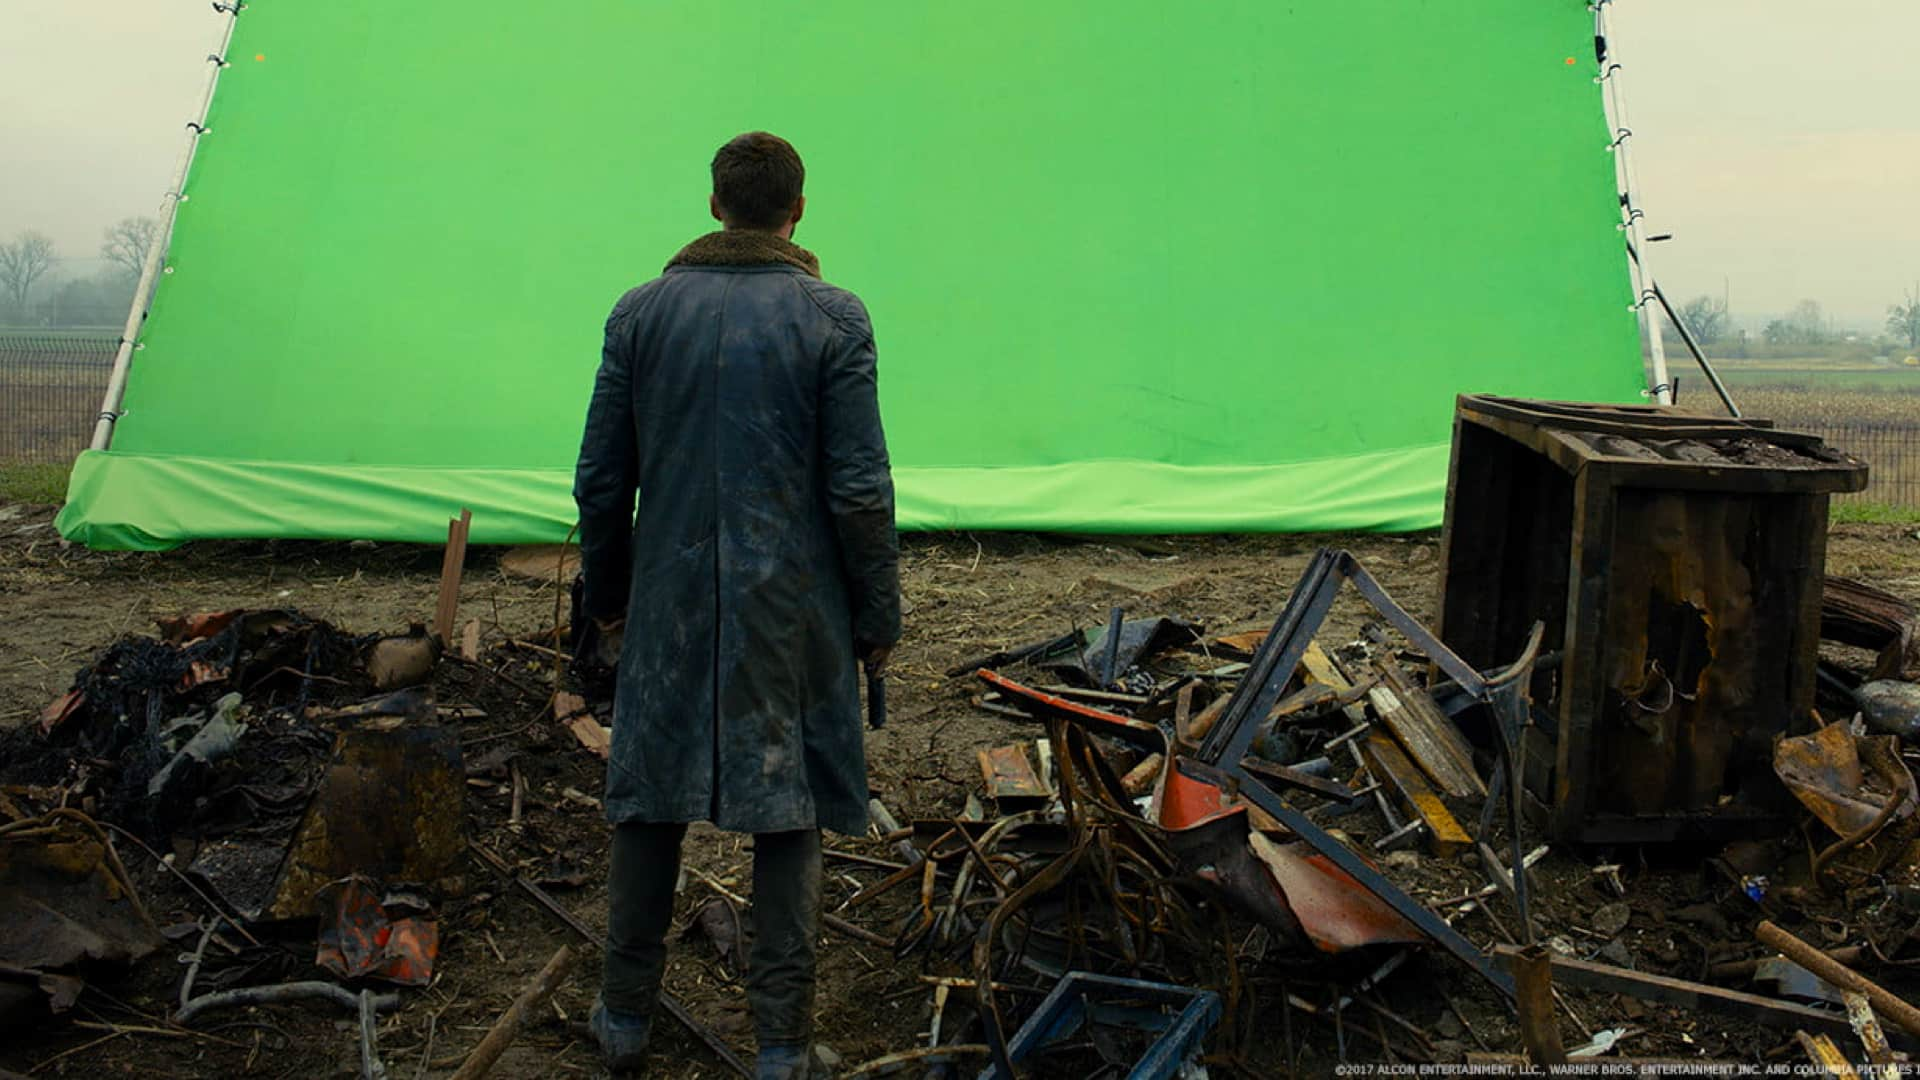 VFX Composite - How to Use a Green Screen - Blade Runner 2049 - Header - StudioBinder